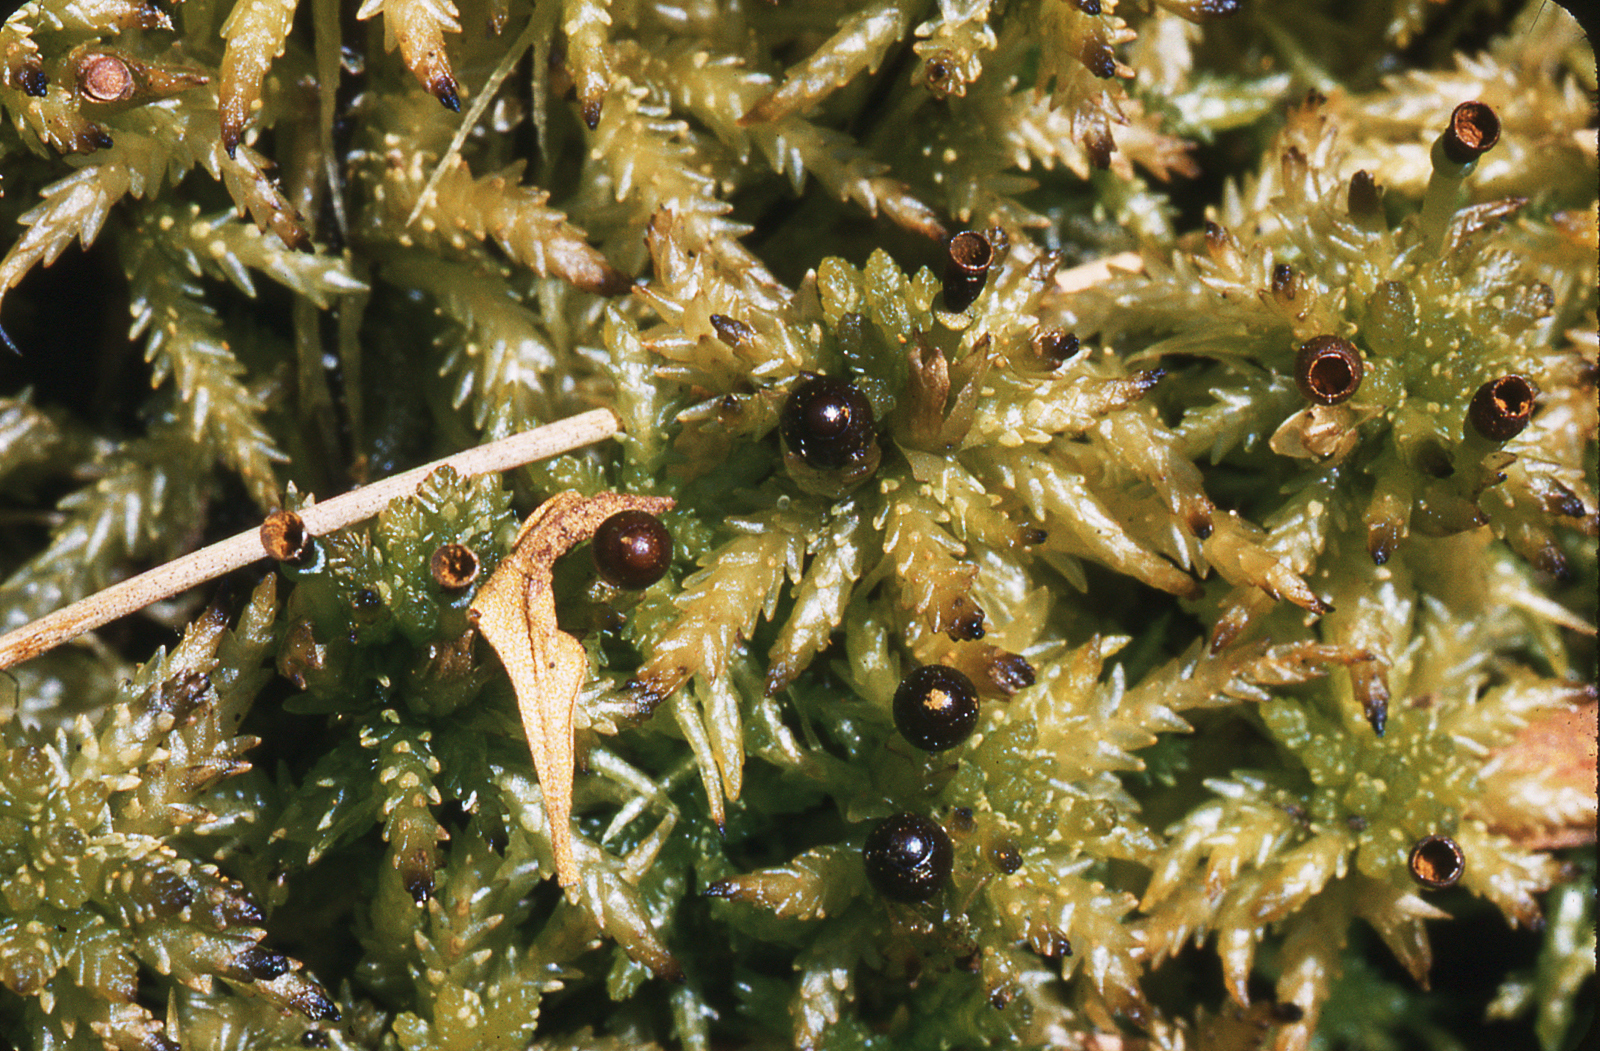 One of Eula's field photos of a Sphagnum moss. The most speciose genus in BRIT's bryophyte herbarium is Sphagnum, with 75 species represented by 509 specimens.